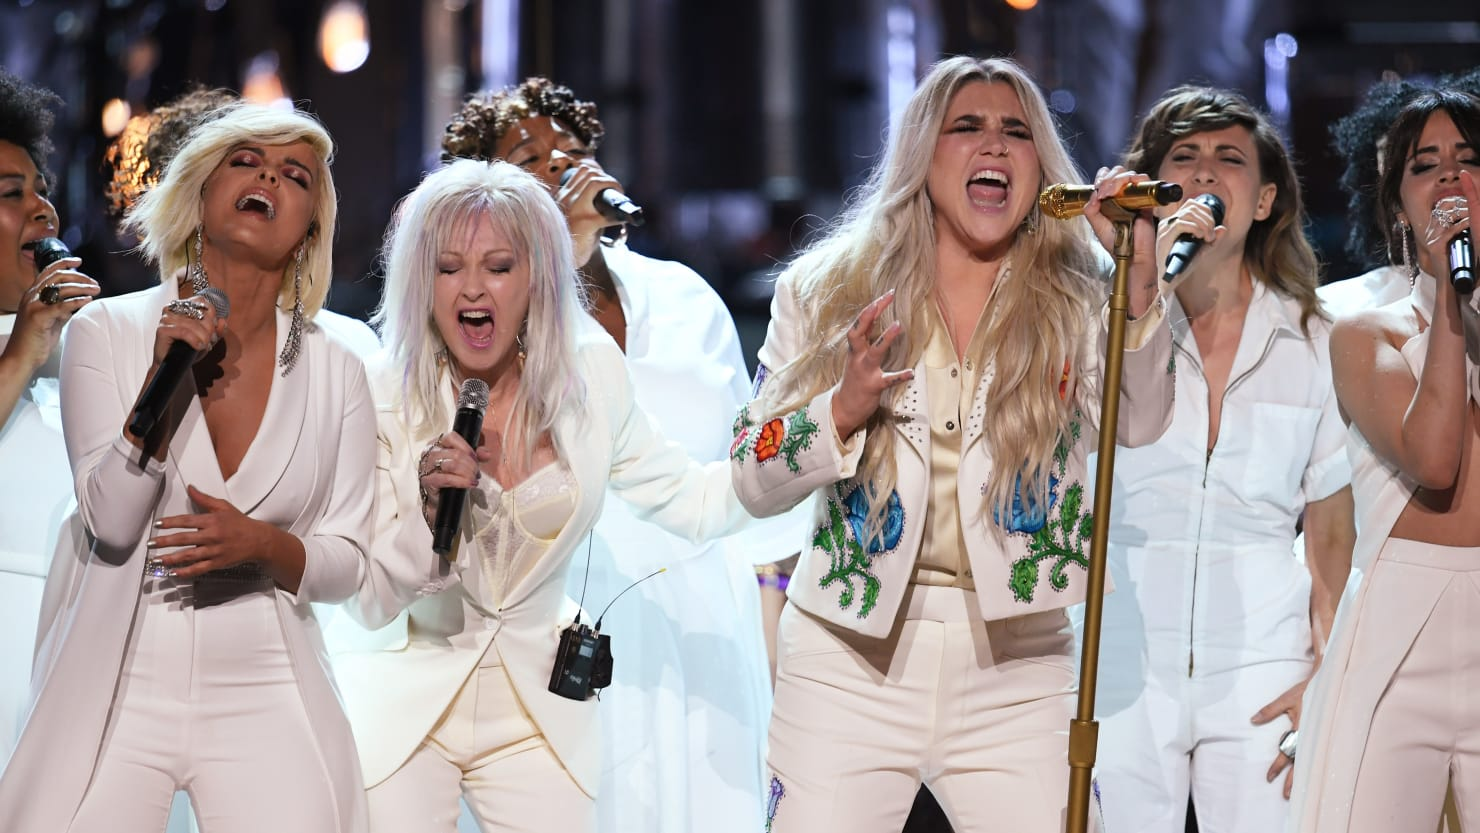 The Grammys and Kesha Highlight Just How Much the Music Industry Has Ignored #MeToo